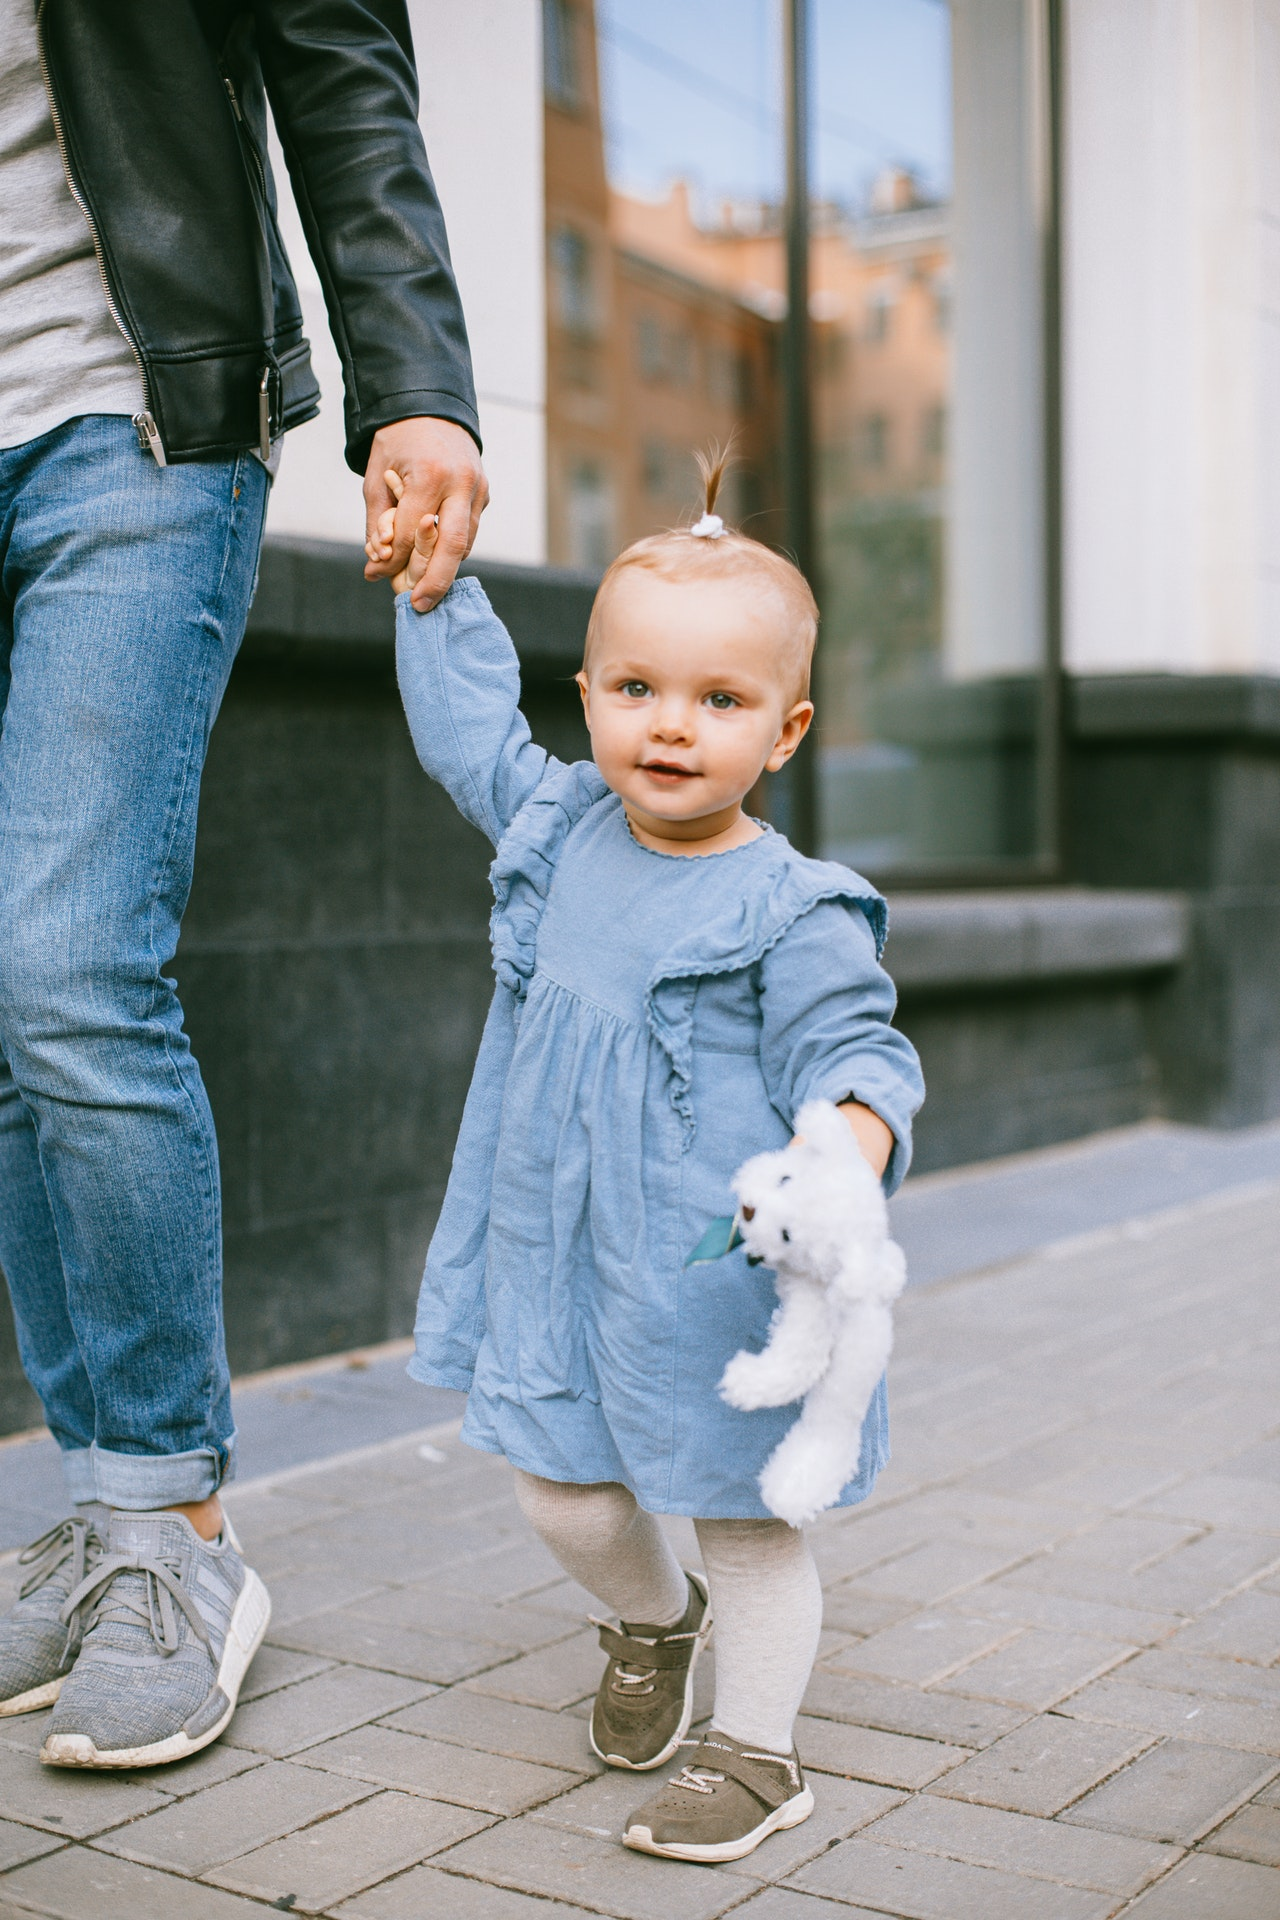 How to Shop for the Cutest Baby Girl Outfits